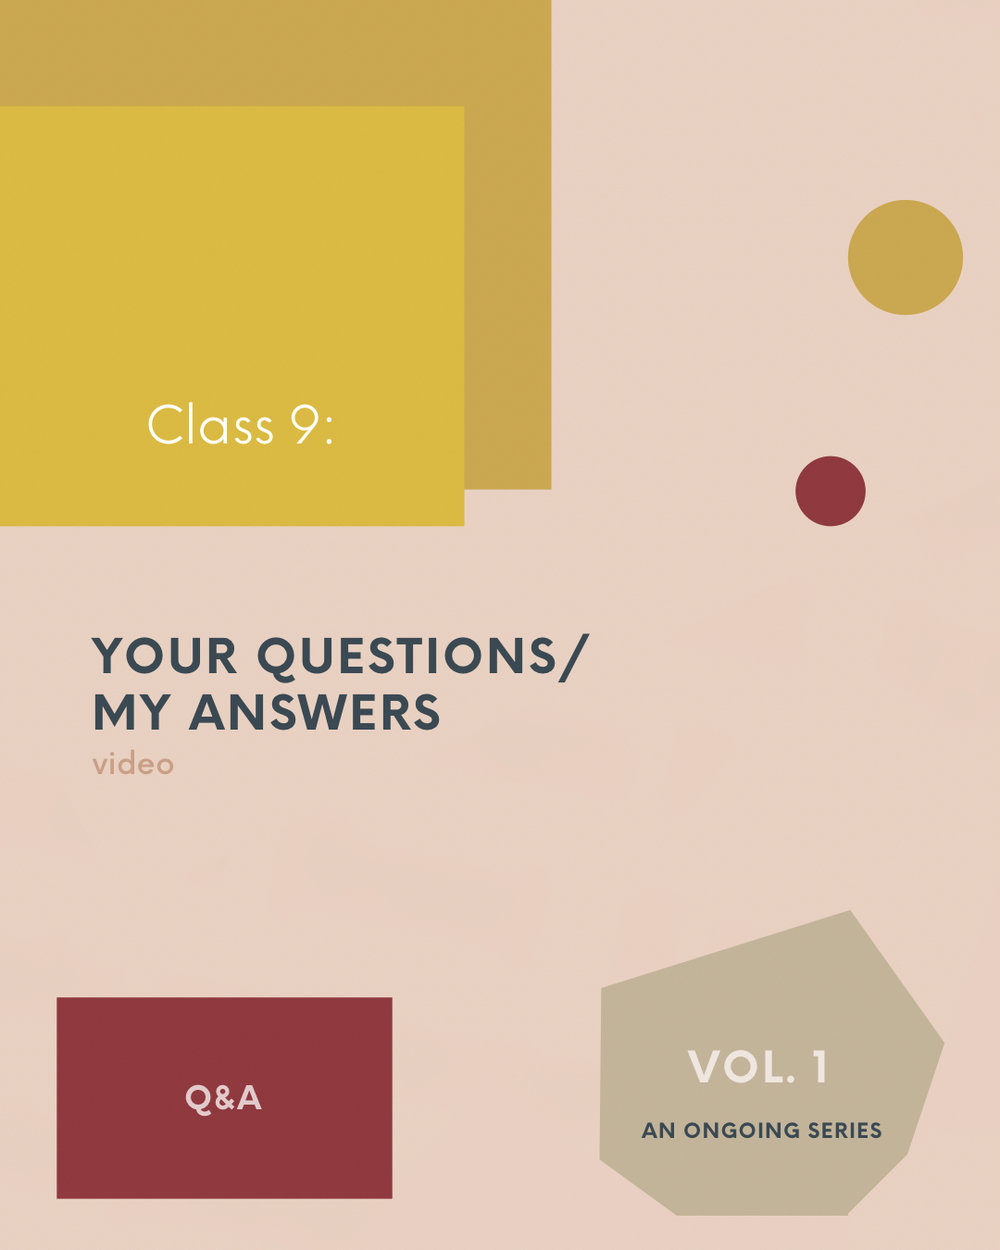 Class No. 9 Q&A Vol. 1 - Q&aBy popular demand we're doing a Q&A!Whoop! Whoop!You asked, and it's my honor to oblige. I'm looking forward to answering your questions.Let's get as real, raw, and open as you all wanna get! Ask whatever you'd like guidance, advice, or tips on.Share what's on your heart, spirit, and mind.This will be a free-structured class on video.